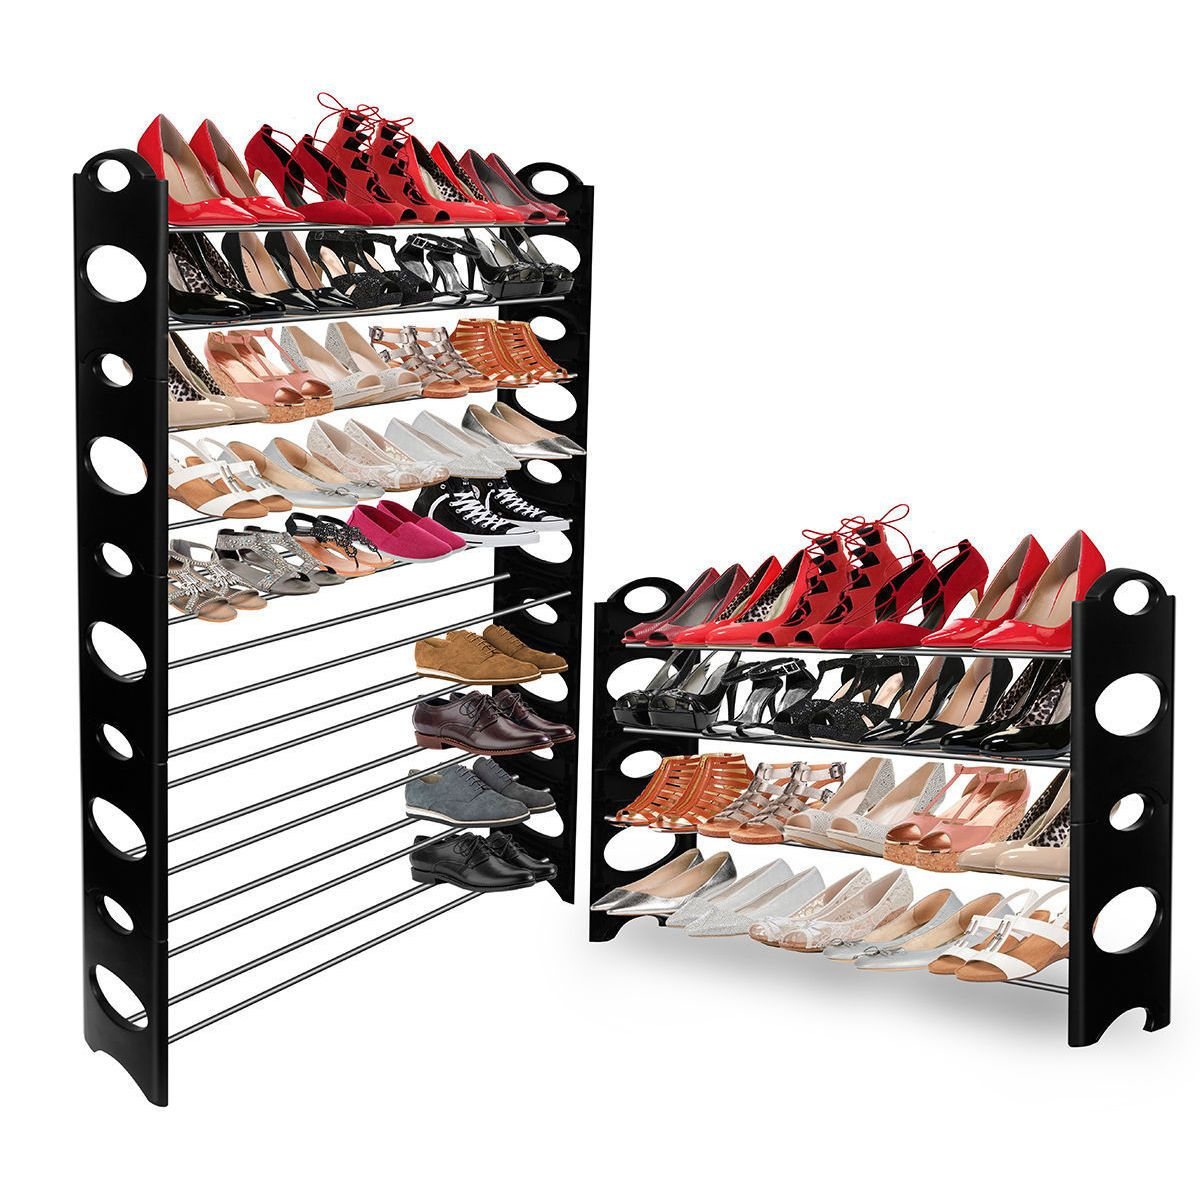 Delightful Oxgord Shoe Rack Tower Storage Organizer For Up To 50 Pairs Of Shoes (Black)